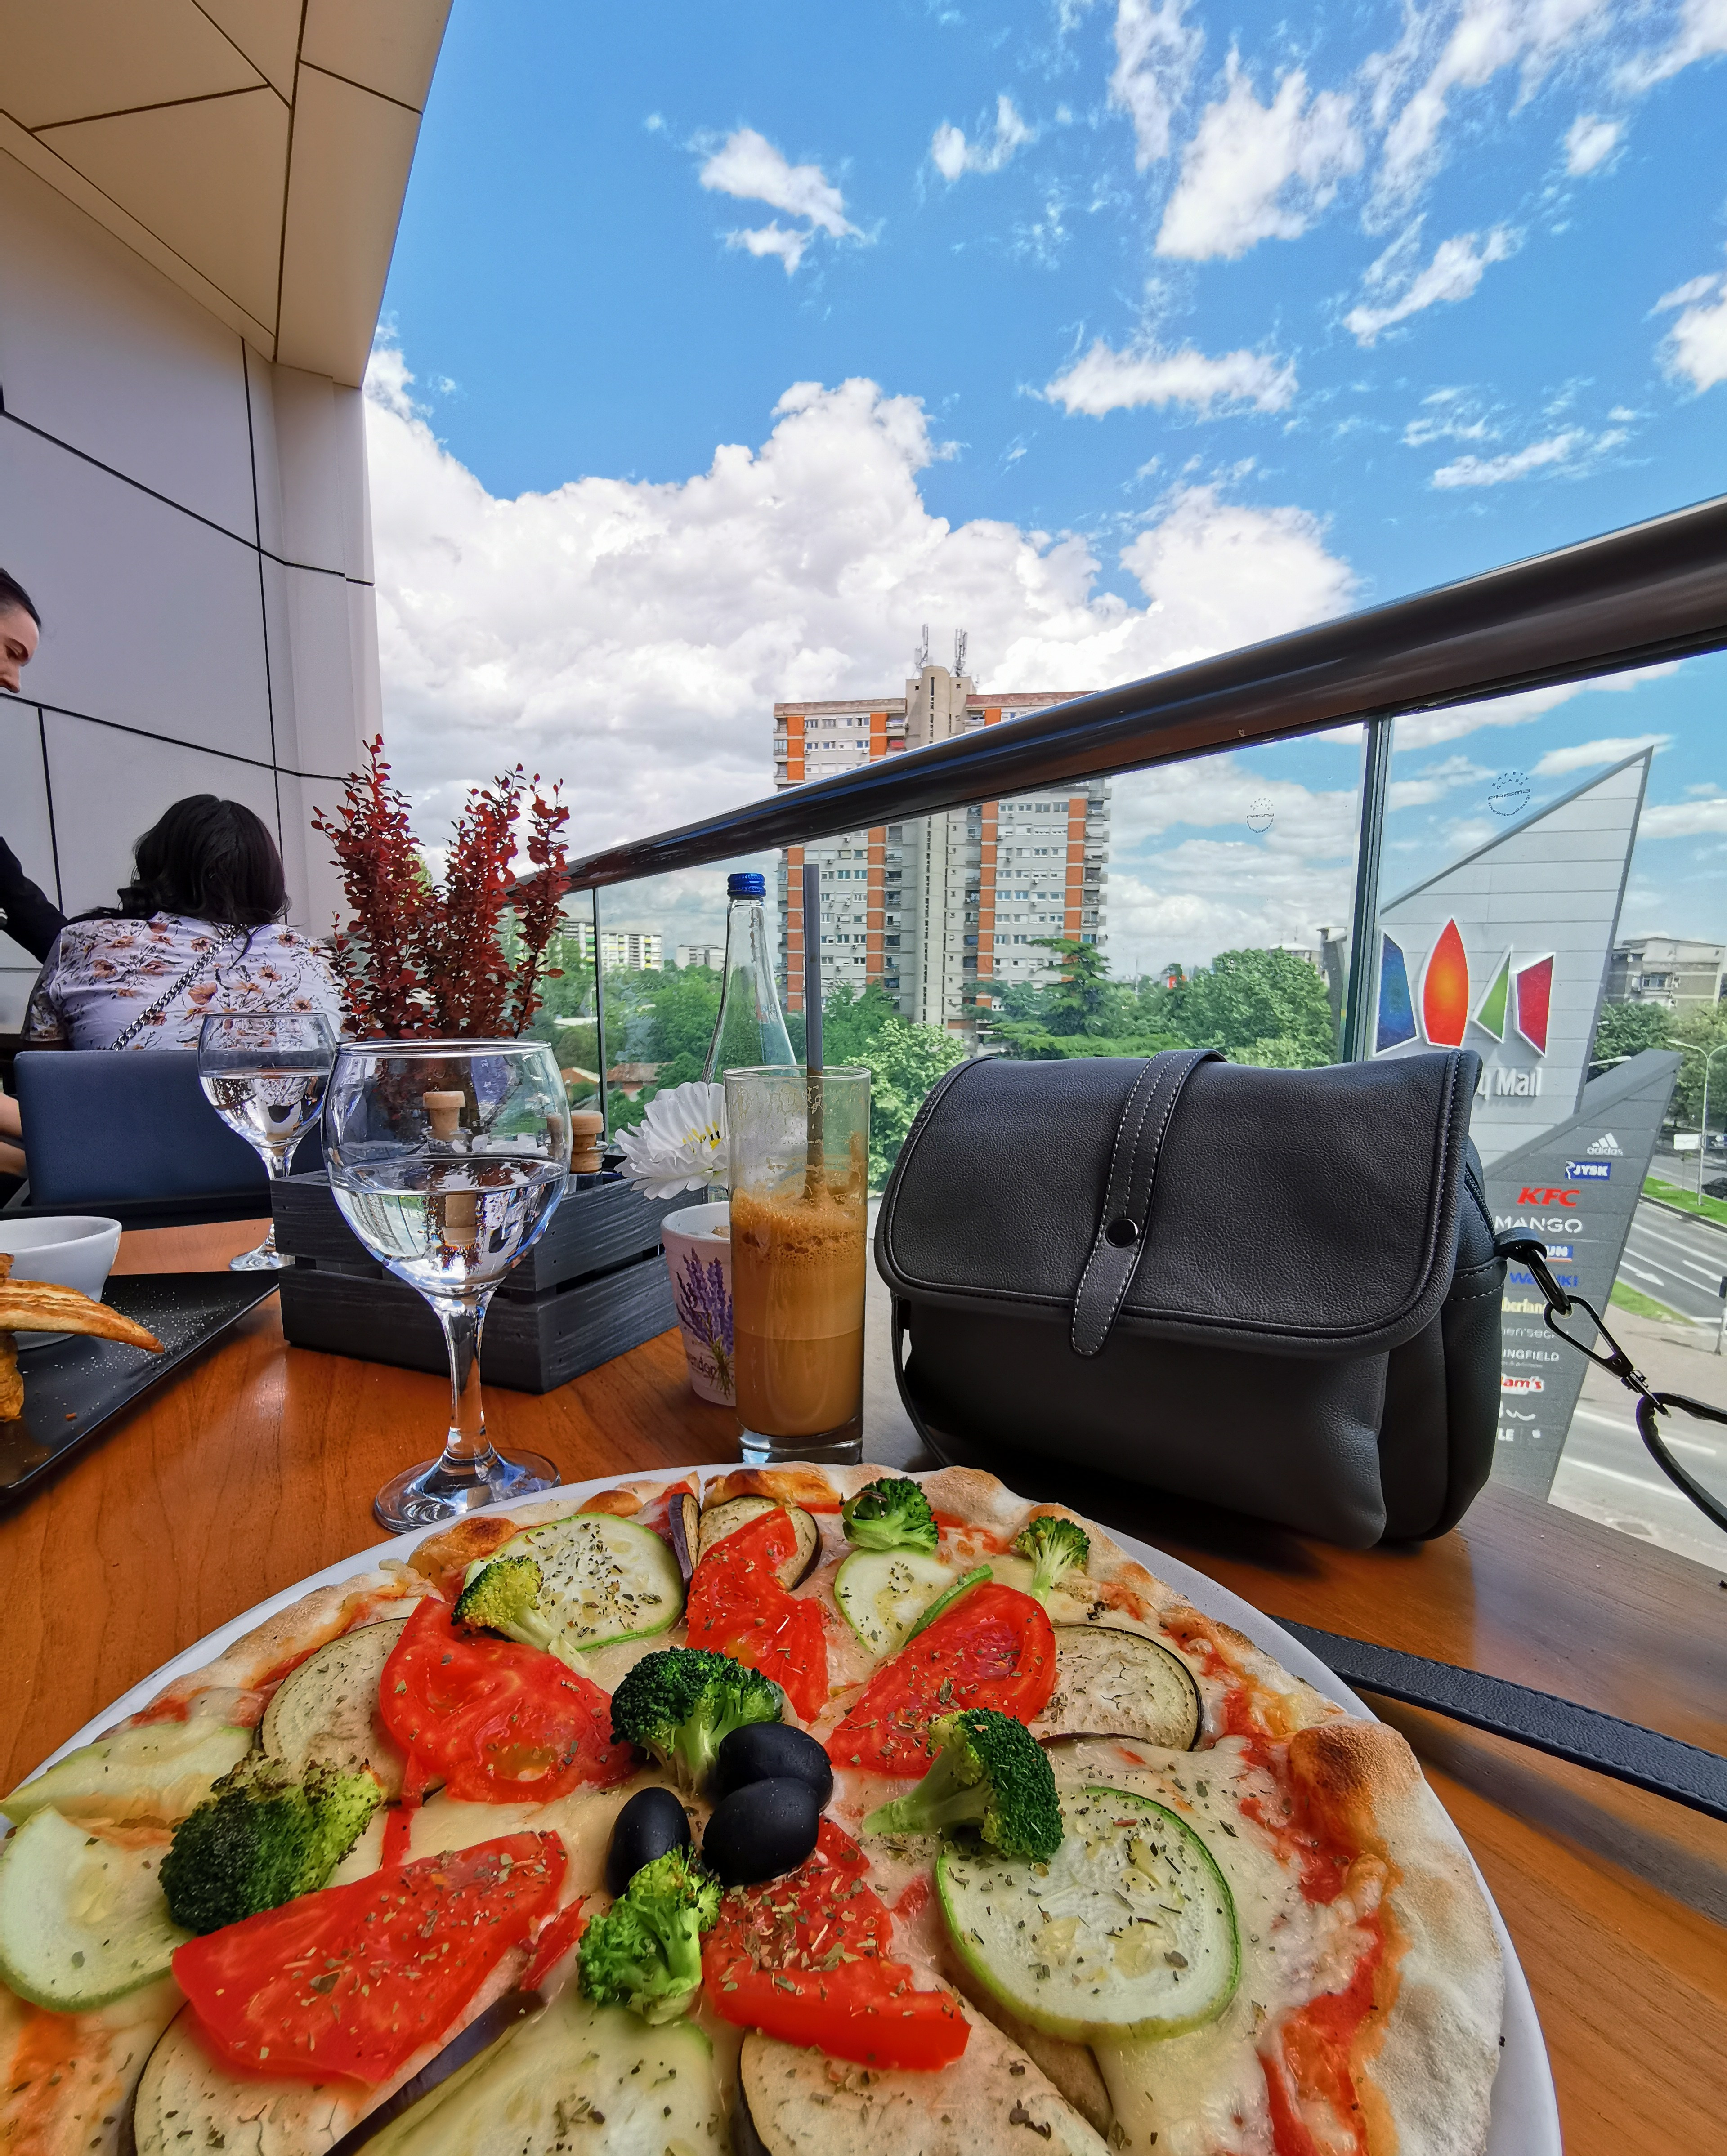 veneto_skopje_citymall_pizza_rosegalgreybag_lunchwithview